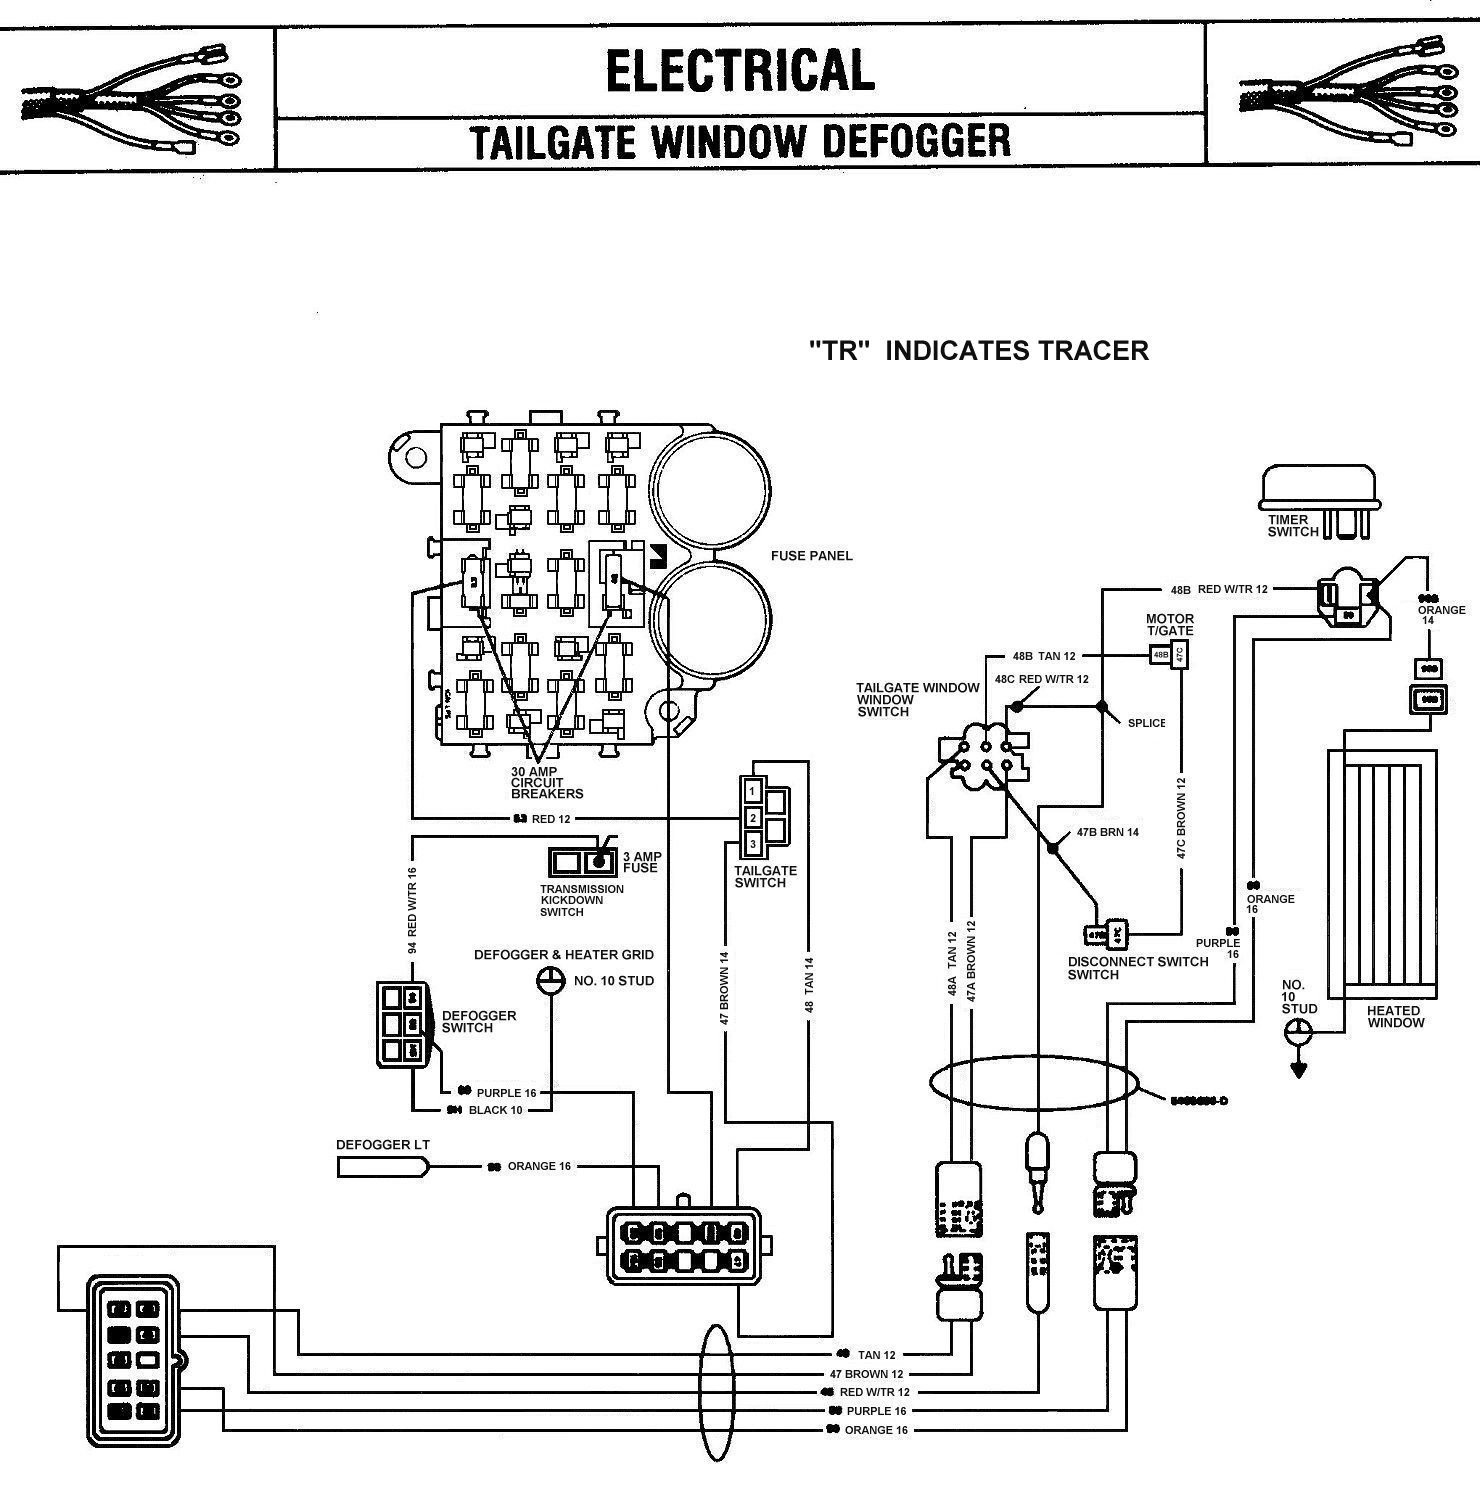 tom oljeep collins fsj wiring page rh oljeep com Ford Cruise Control Diagram Cruise Control Block Diagram